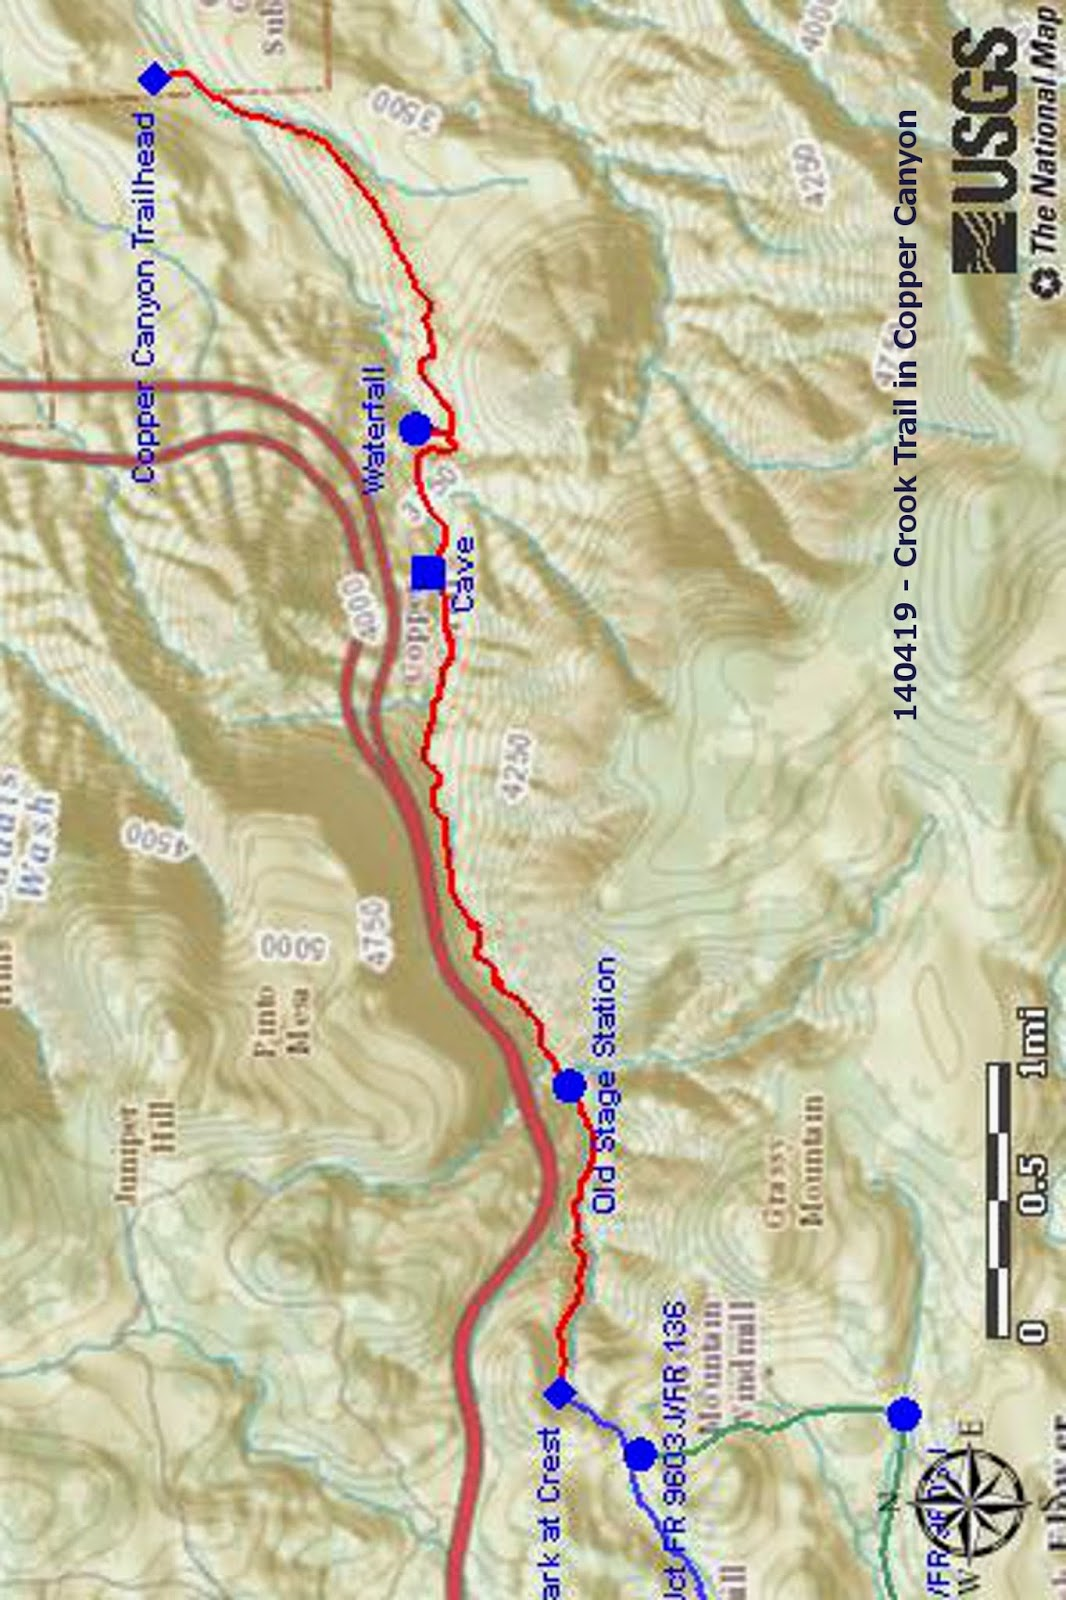 our gps track is shown in red on the included map below